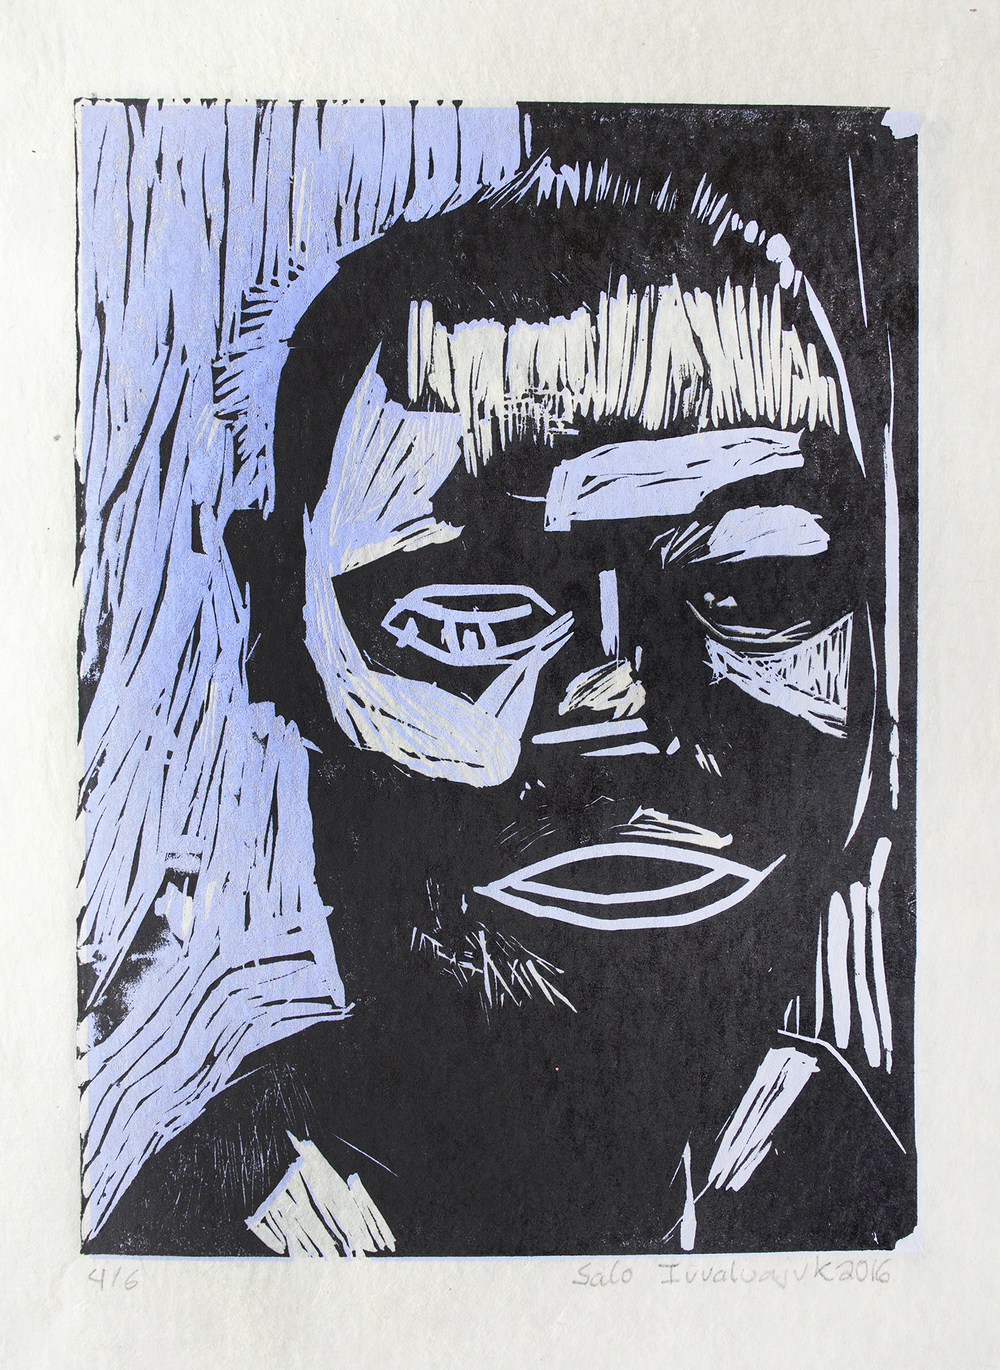 Uvanga: Self-Portrait   Salomonie Ivaluajuk  Two-Layer Linocut on Washi  15.5 x 21.5""